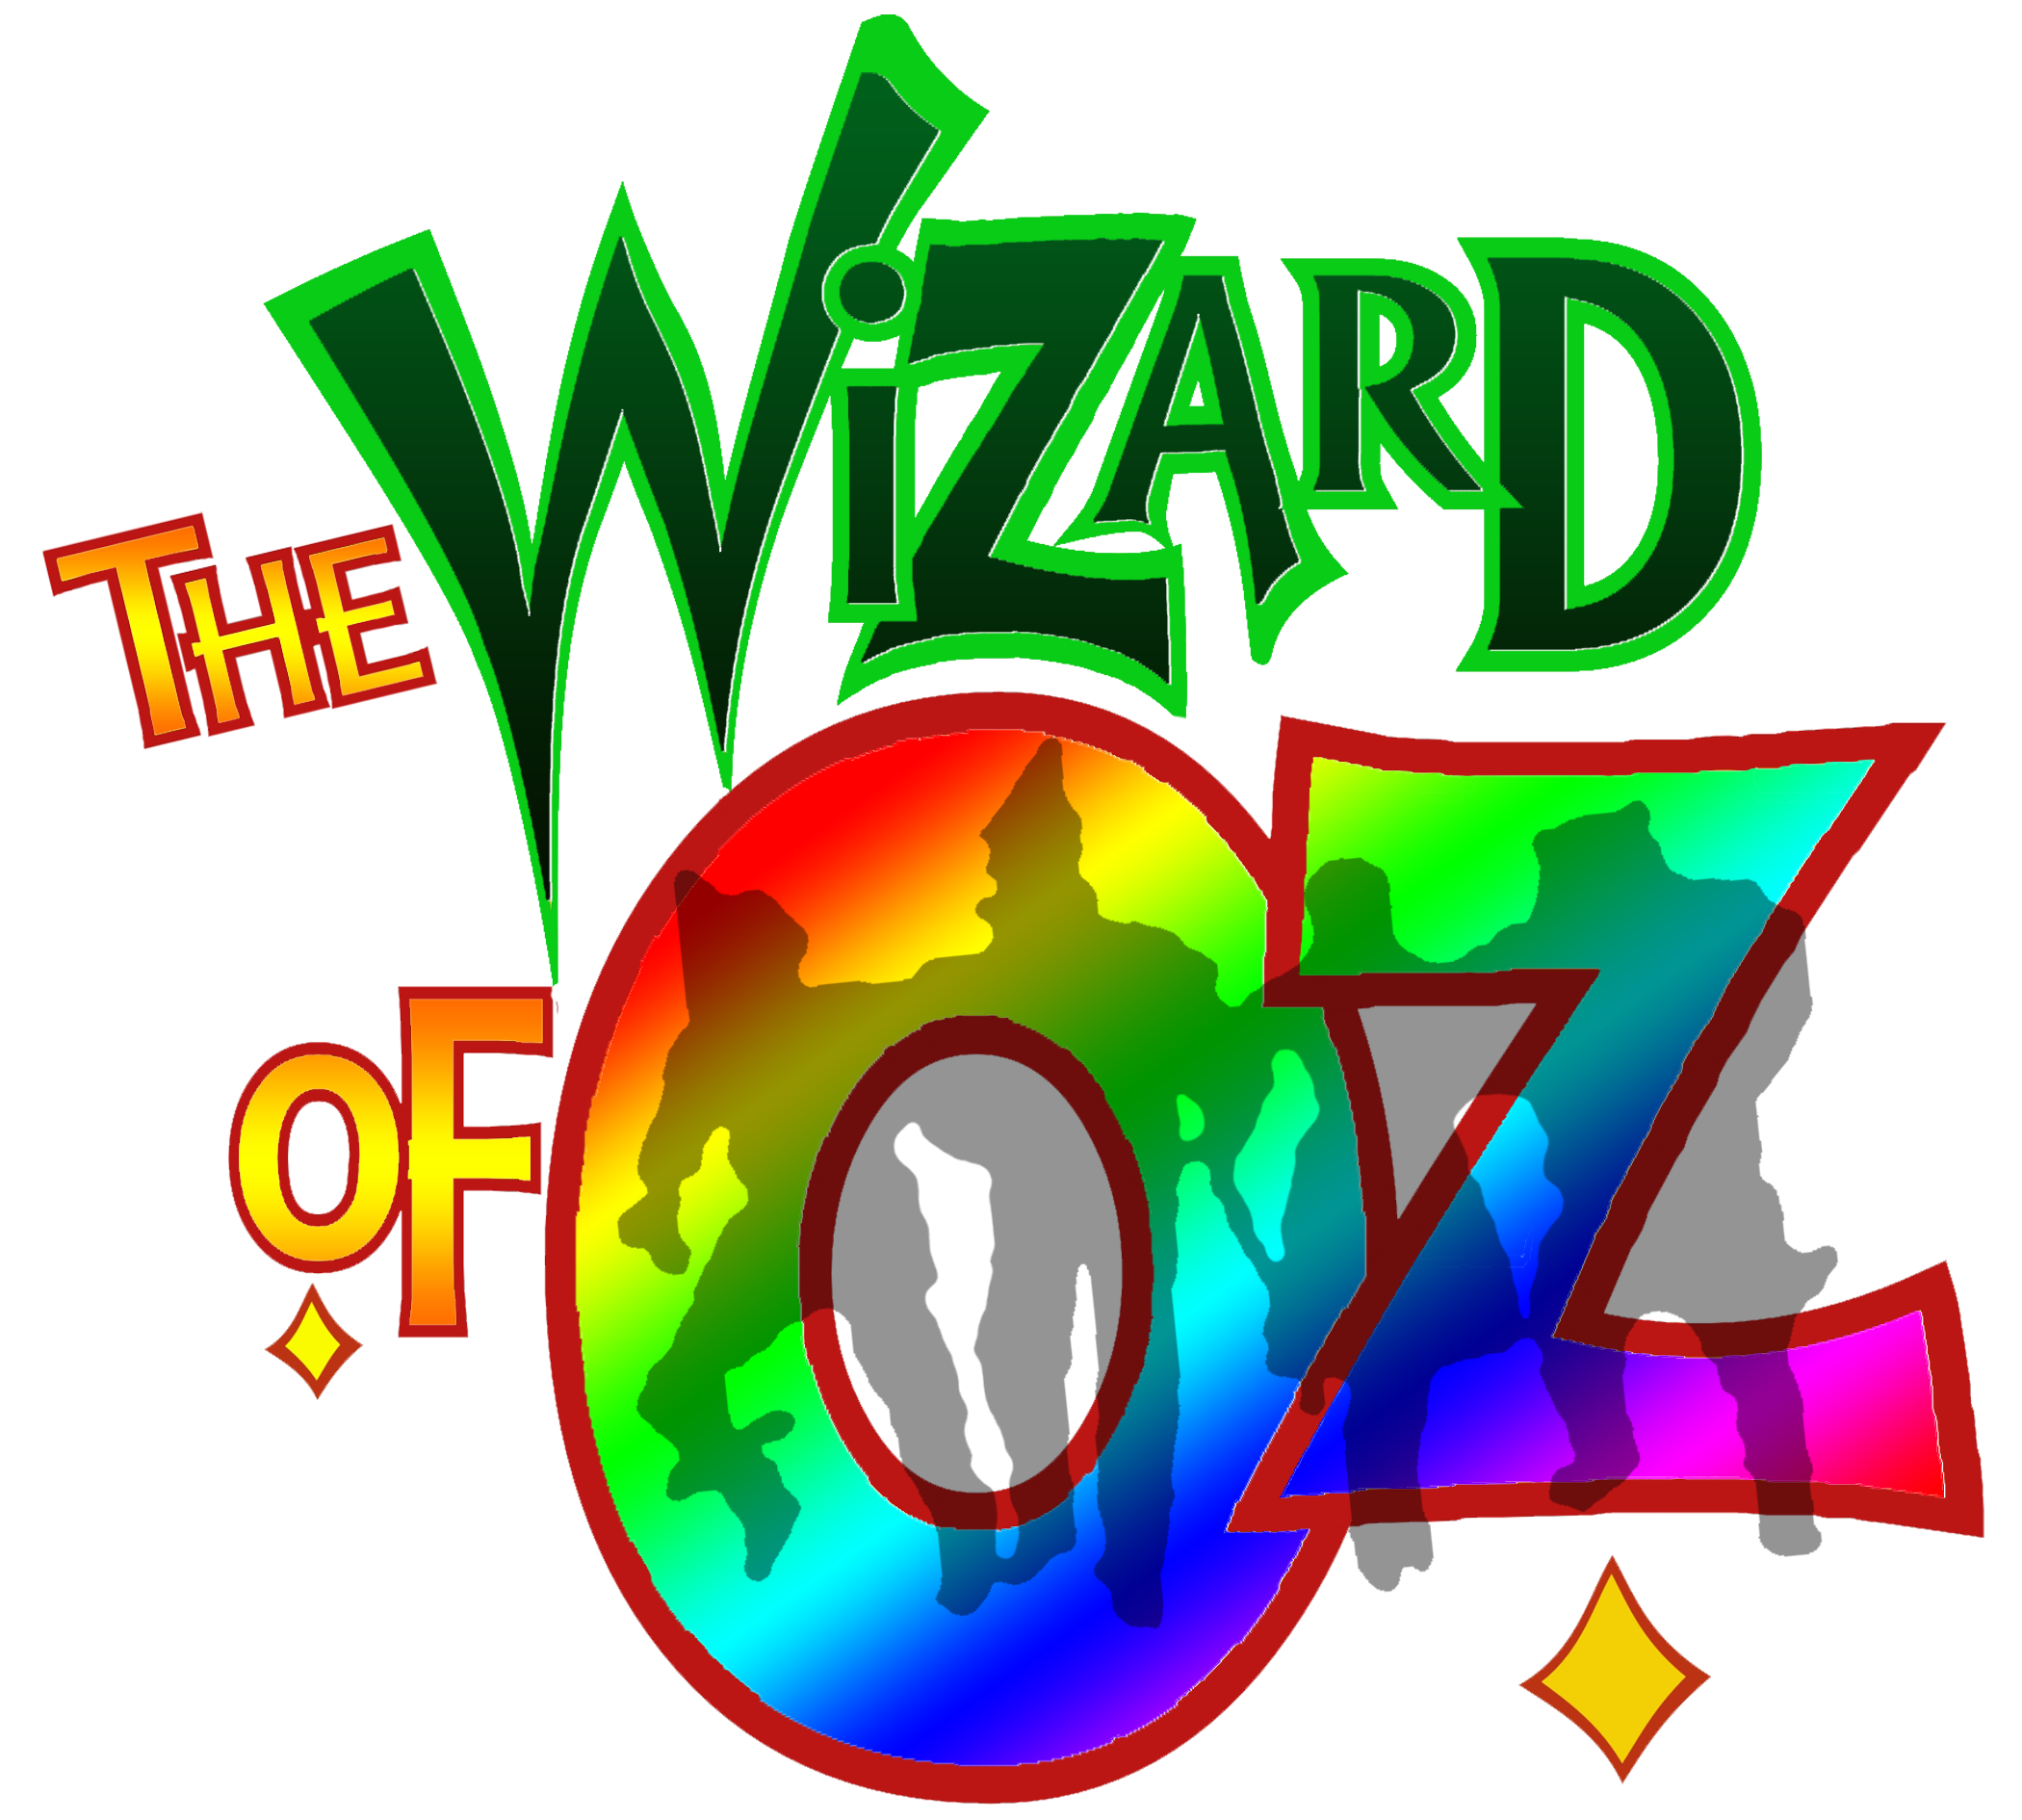 Wizard of oz logo images galleries for Logo creation wizard